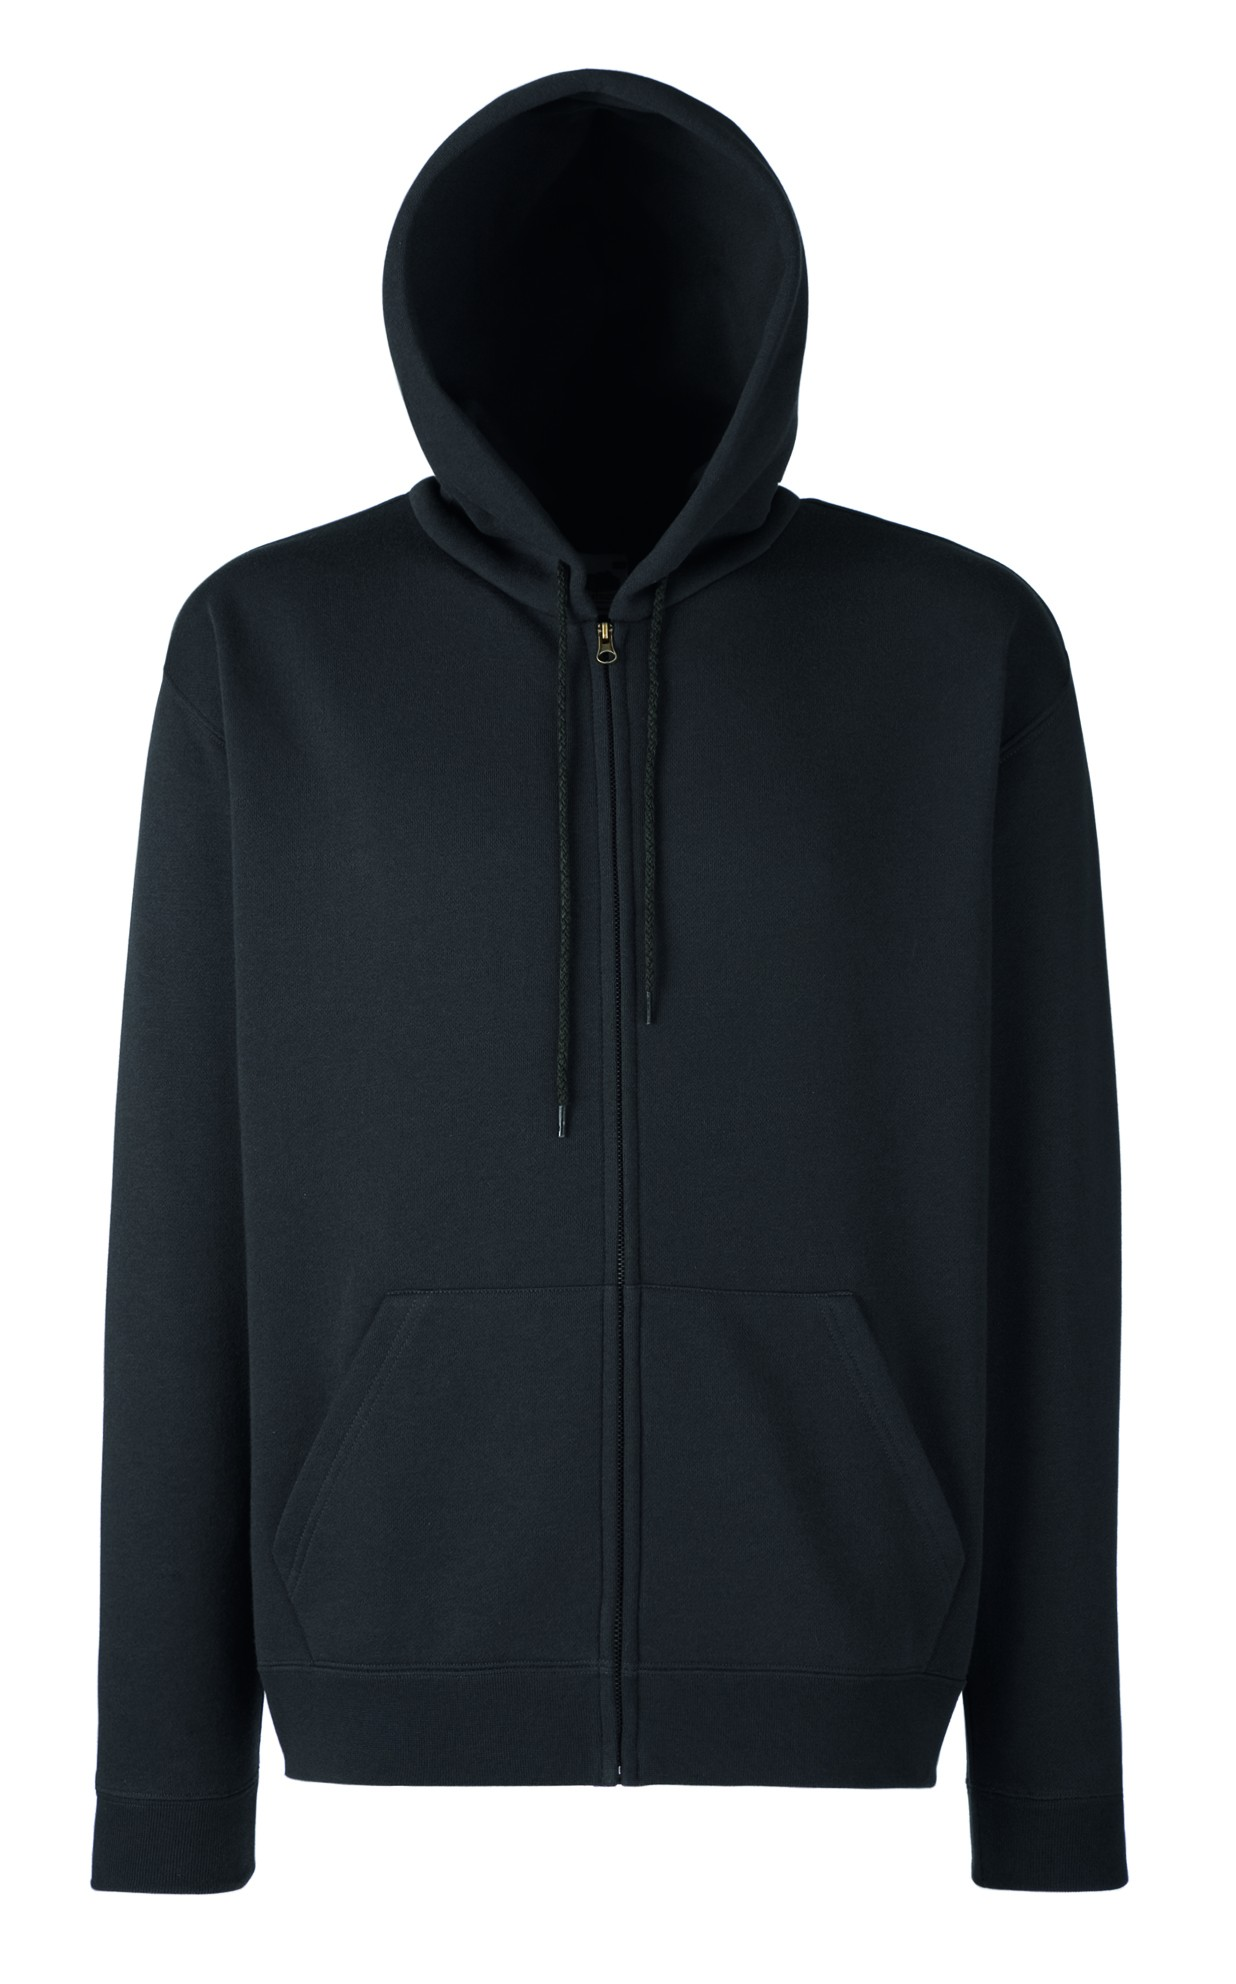 Fruit of the Loom Zip hoodie sweatshirt SC361C Charcoal